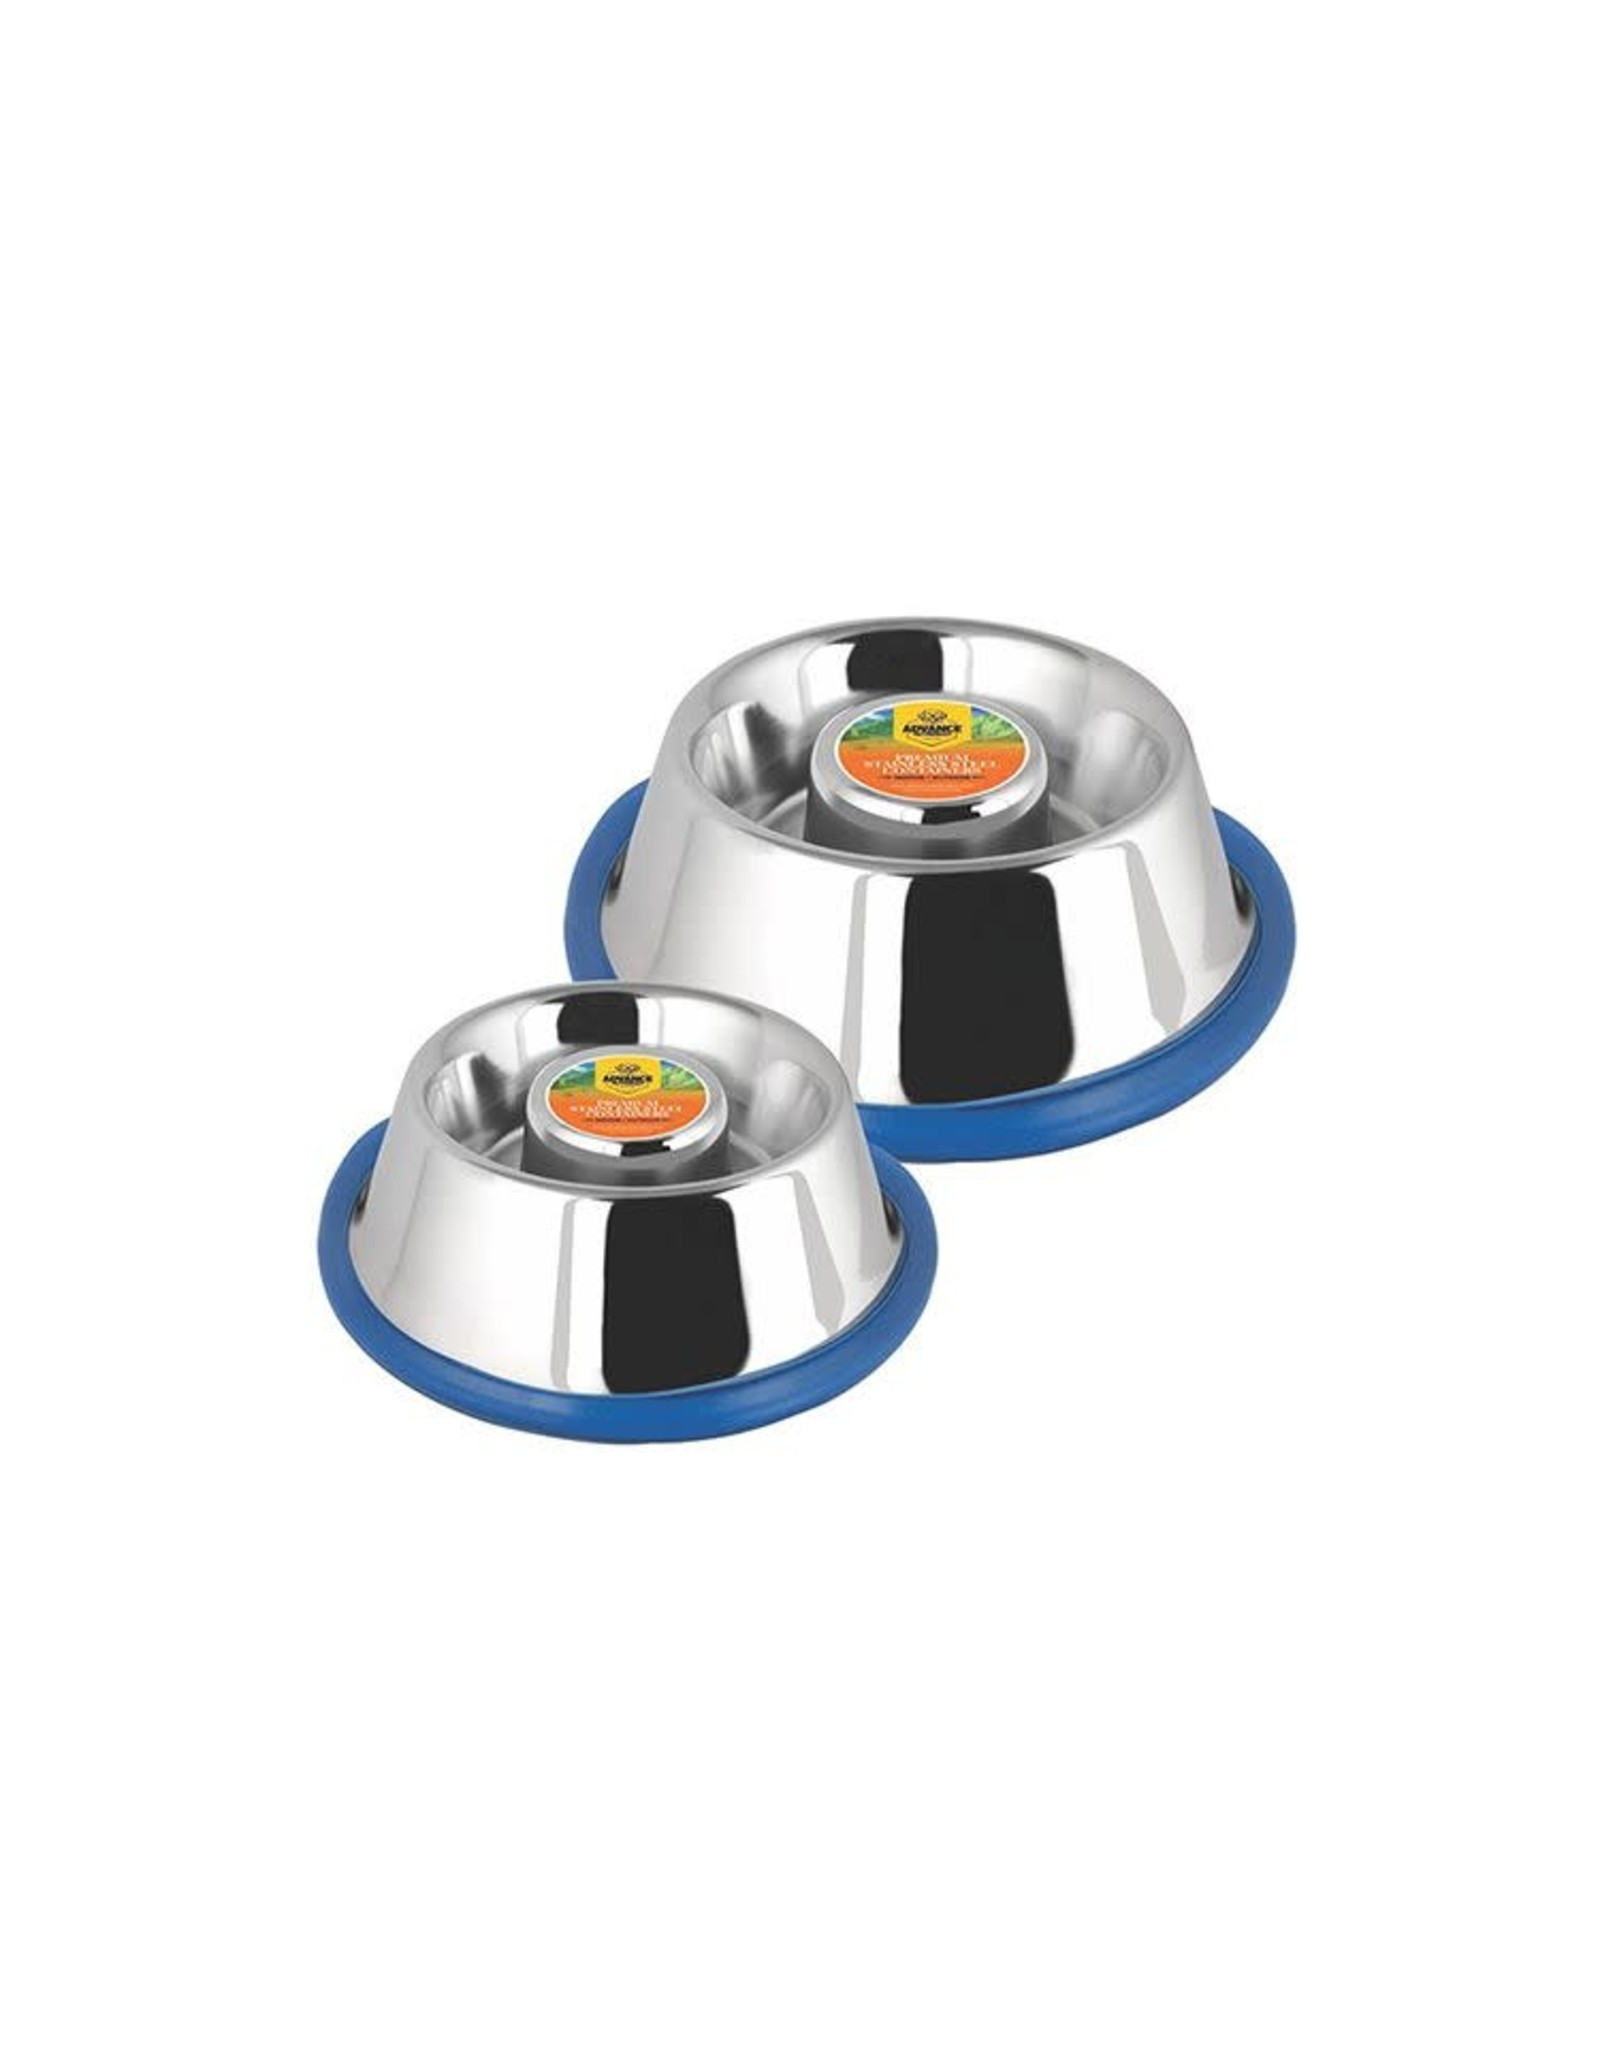 Tailfin Sports Advanced Pet Products Slow Feeding Stainless Steel Bowl - 58 oz.